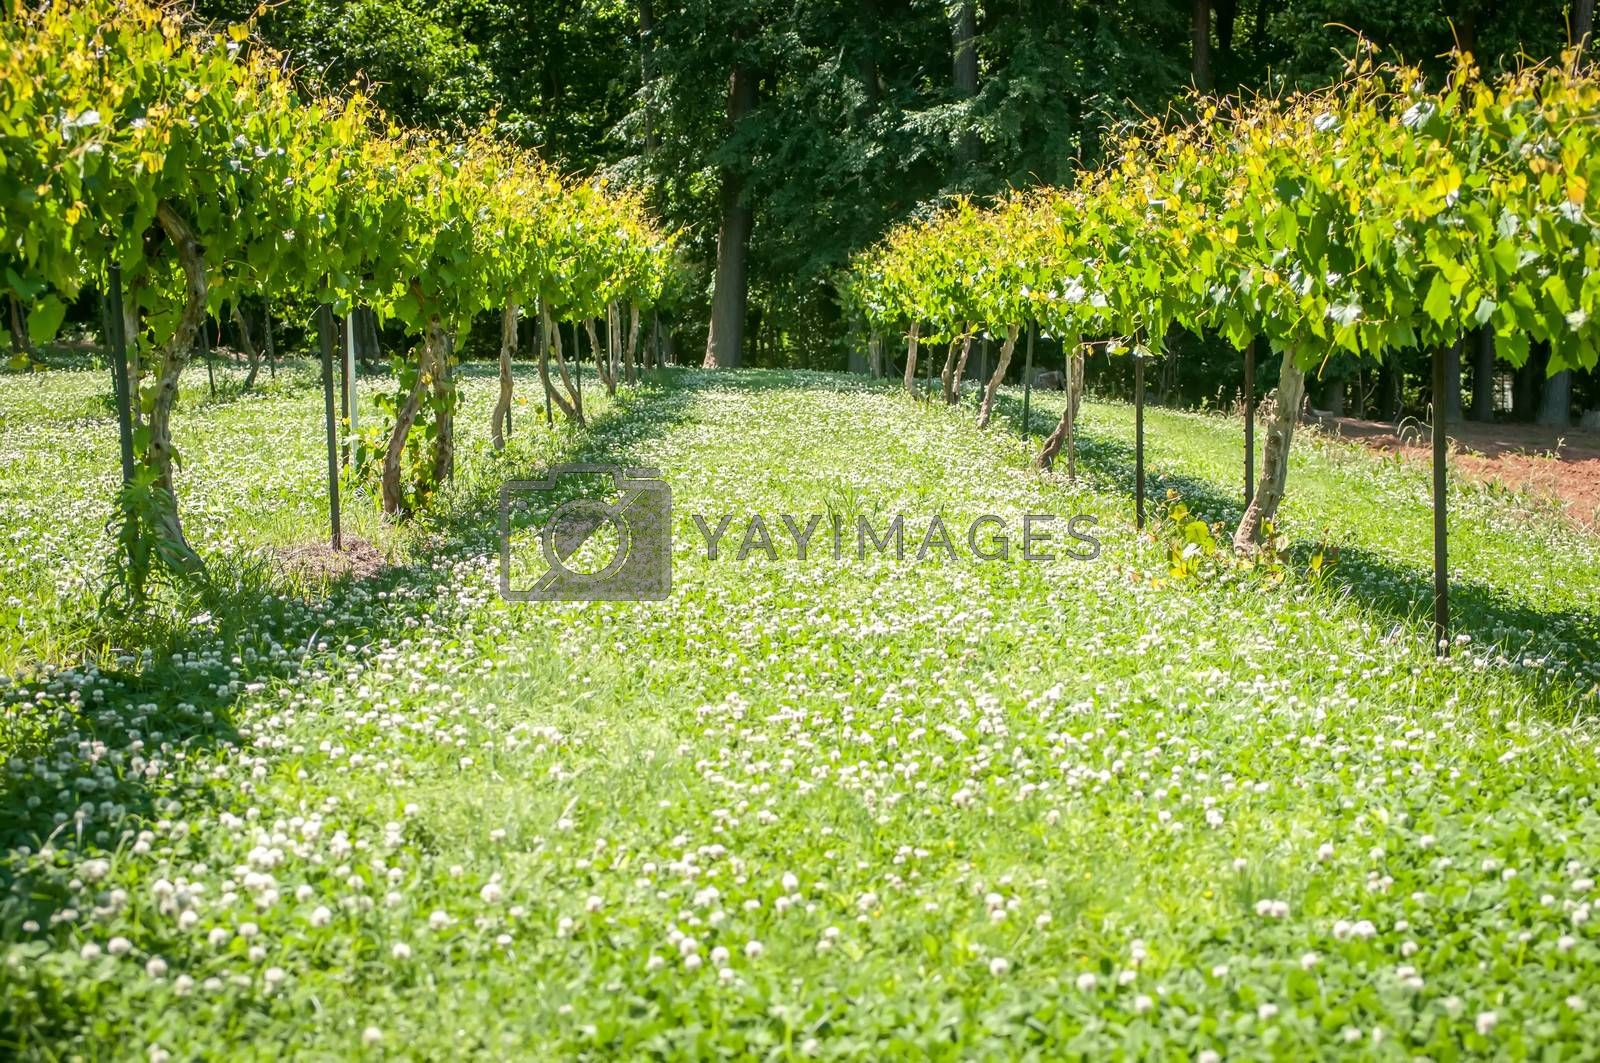 at the vineyard farm on a bright sunny day